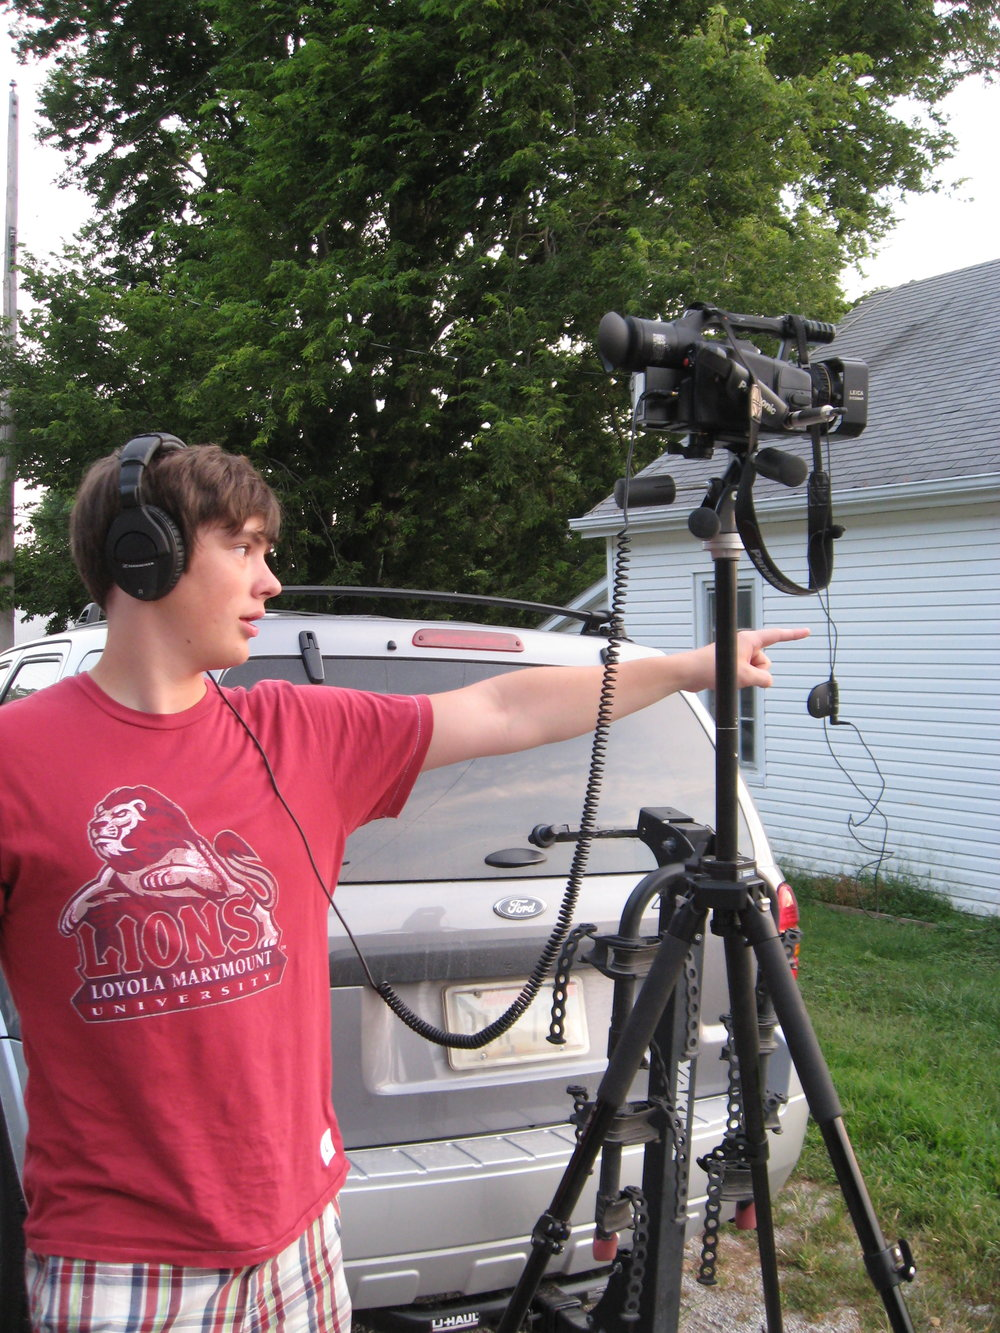 Matt working on a short film with friends during the summer after graduation, before leaving Omaha to attend film school in LA.